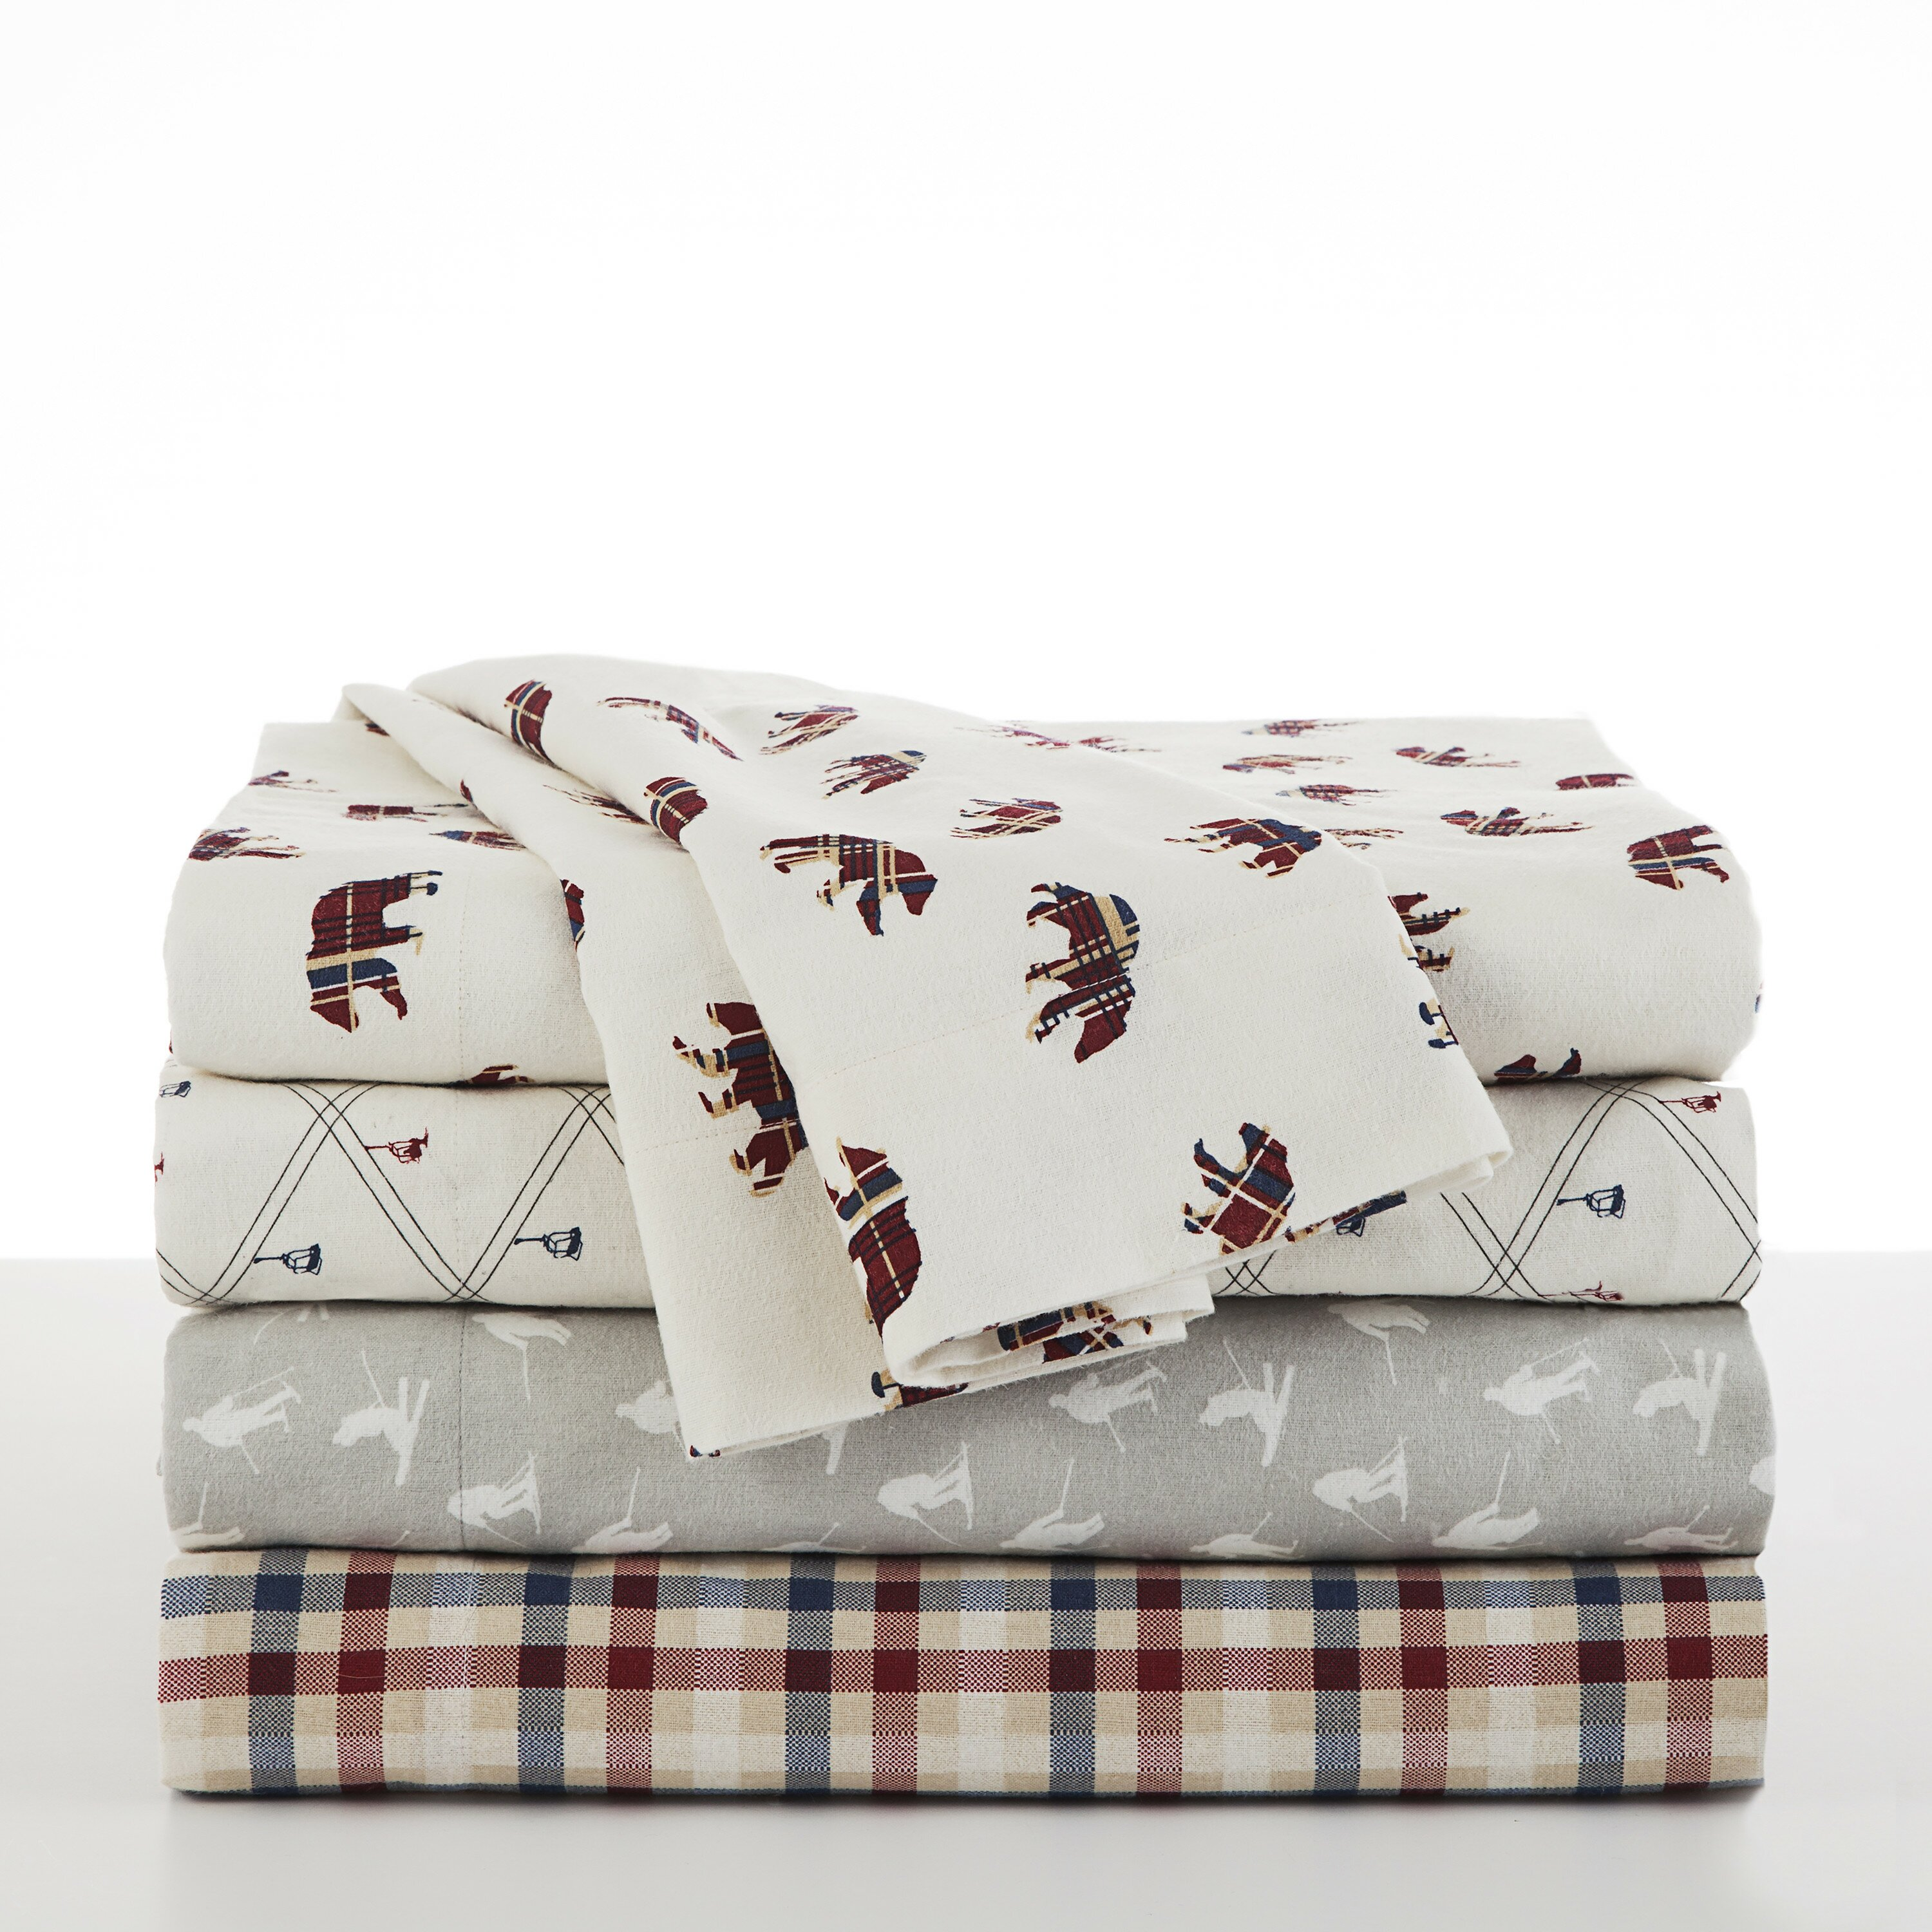 Flannel Sheets On Sale For Queen Size Bed